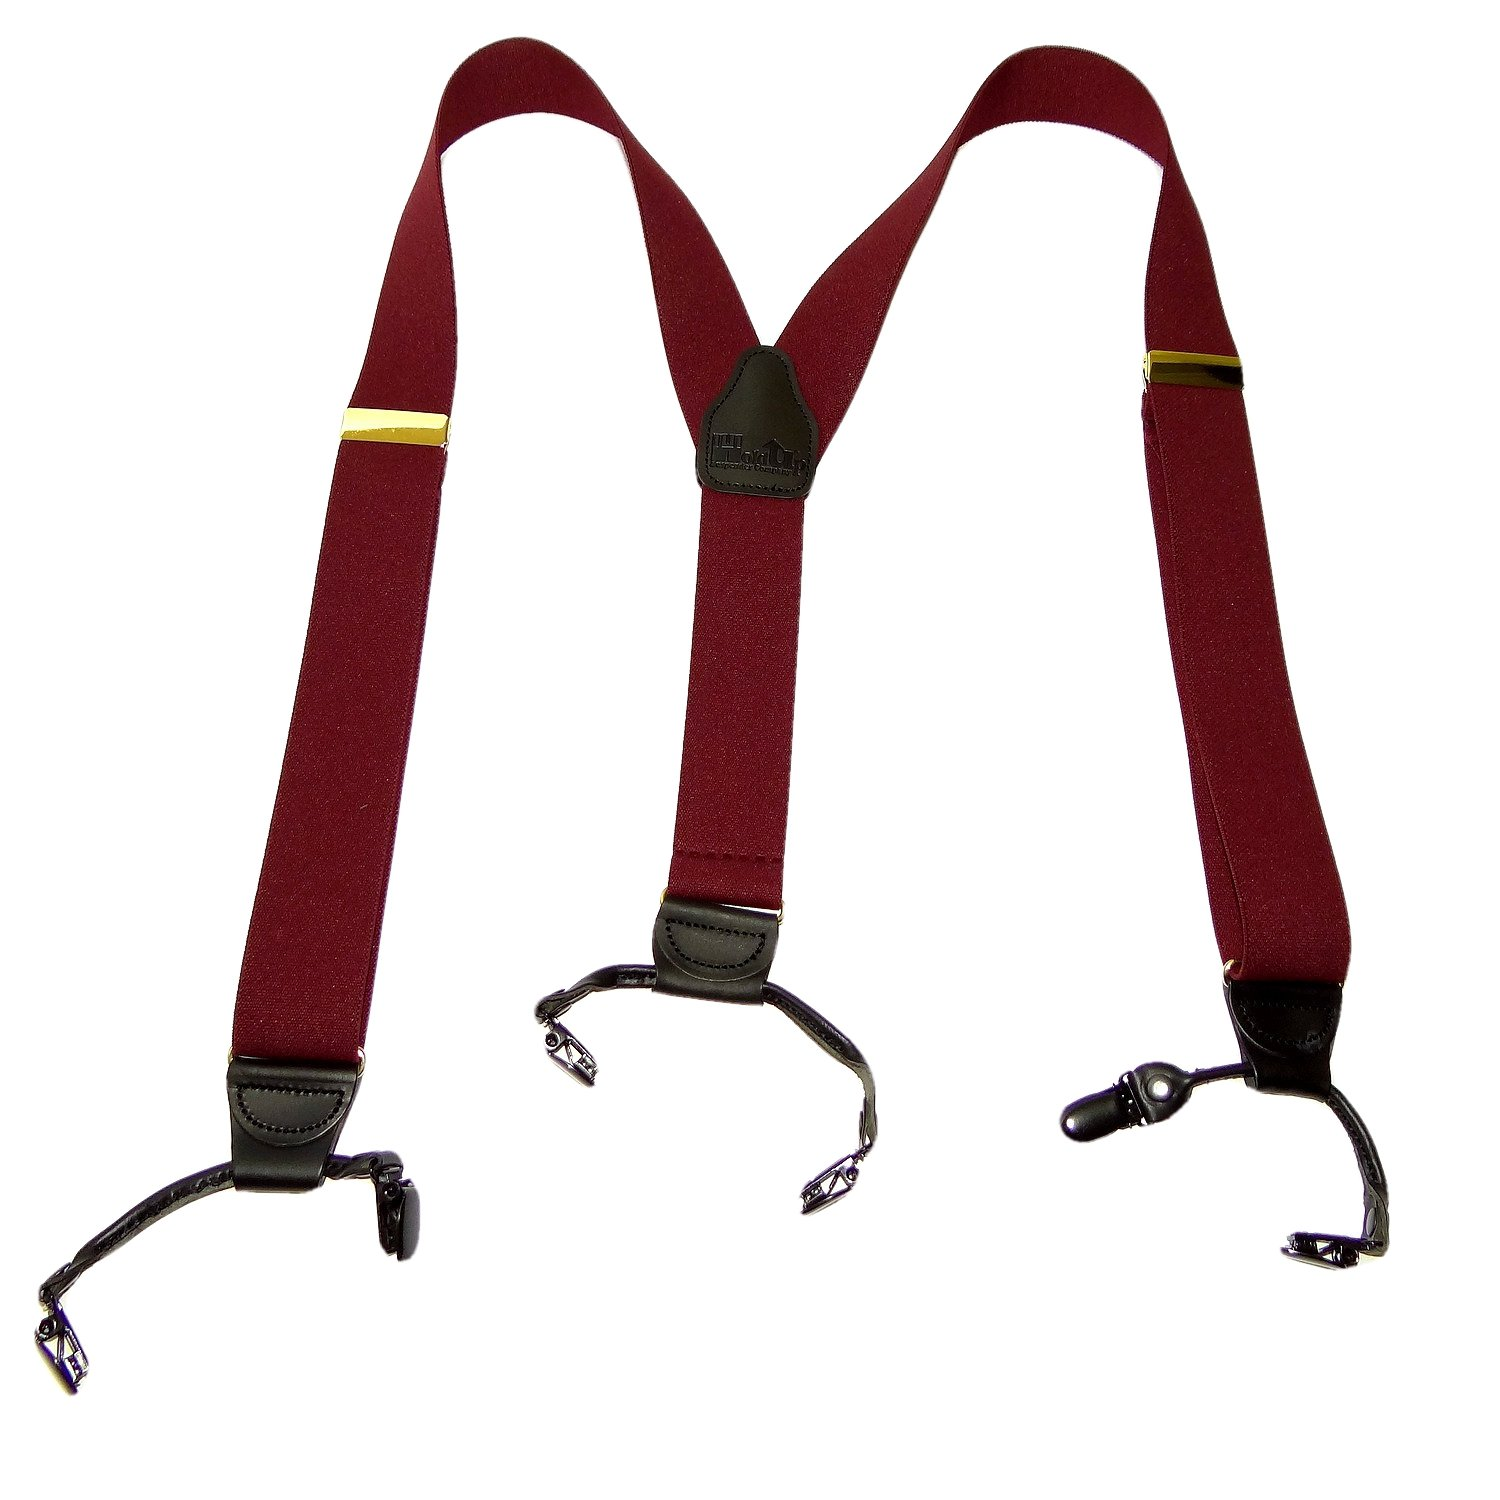 Holdup Suspender Company dark Merlot Burgundy wine colored Double-Up style Y-back Suspenders with Patented black No-slip Clips.